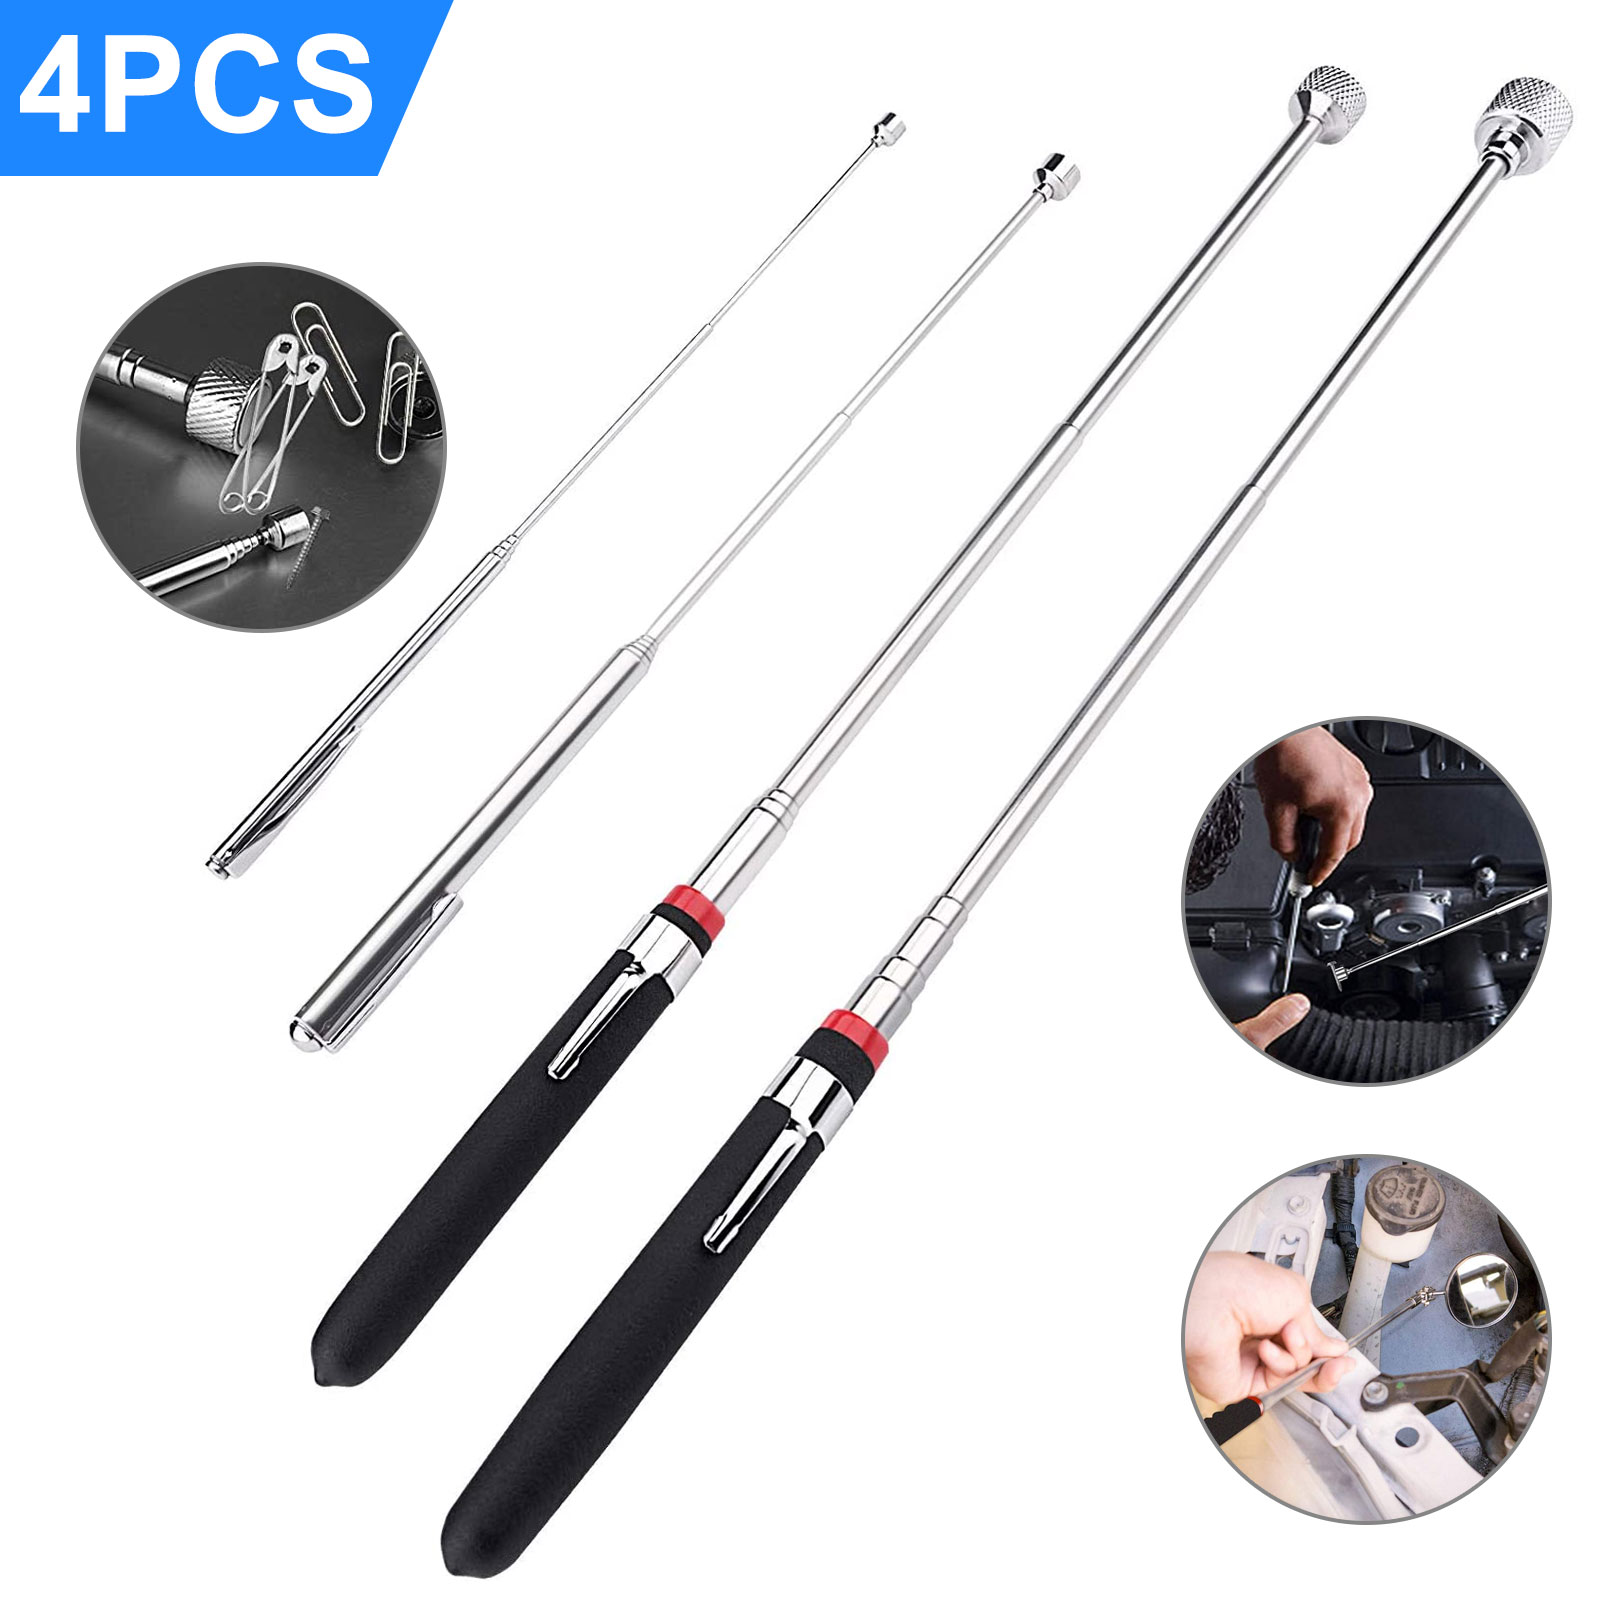 Magnetic Pick-up Tool Retrieval Tool Telescoping Stainless Steel with LED Light for Quick Find of Metal Items at Home,Garage,Yard and Office